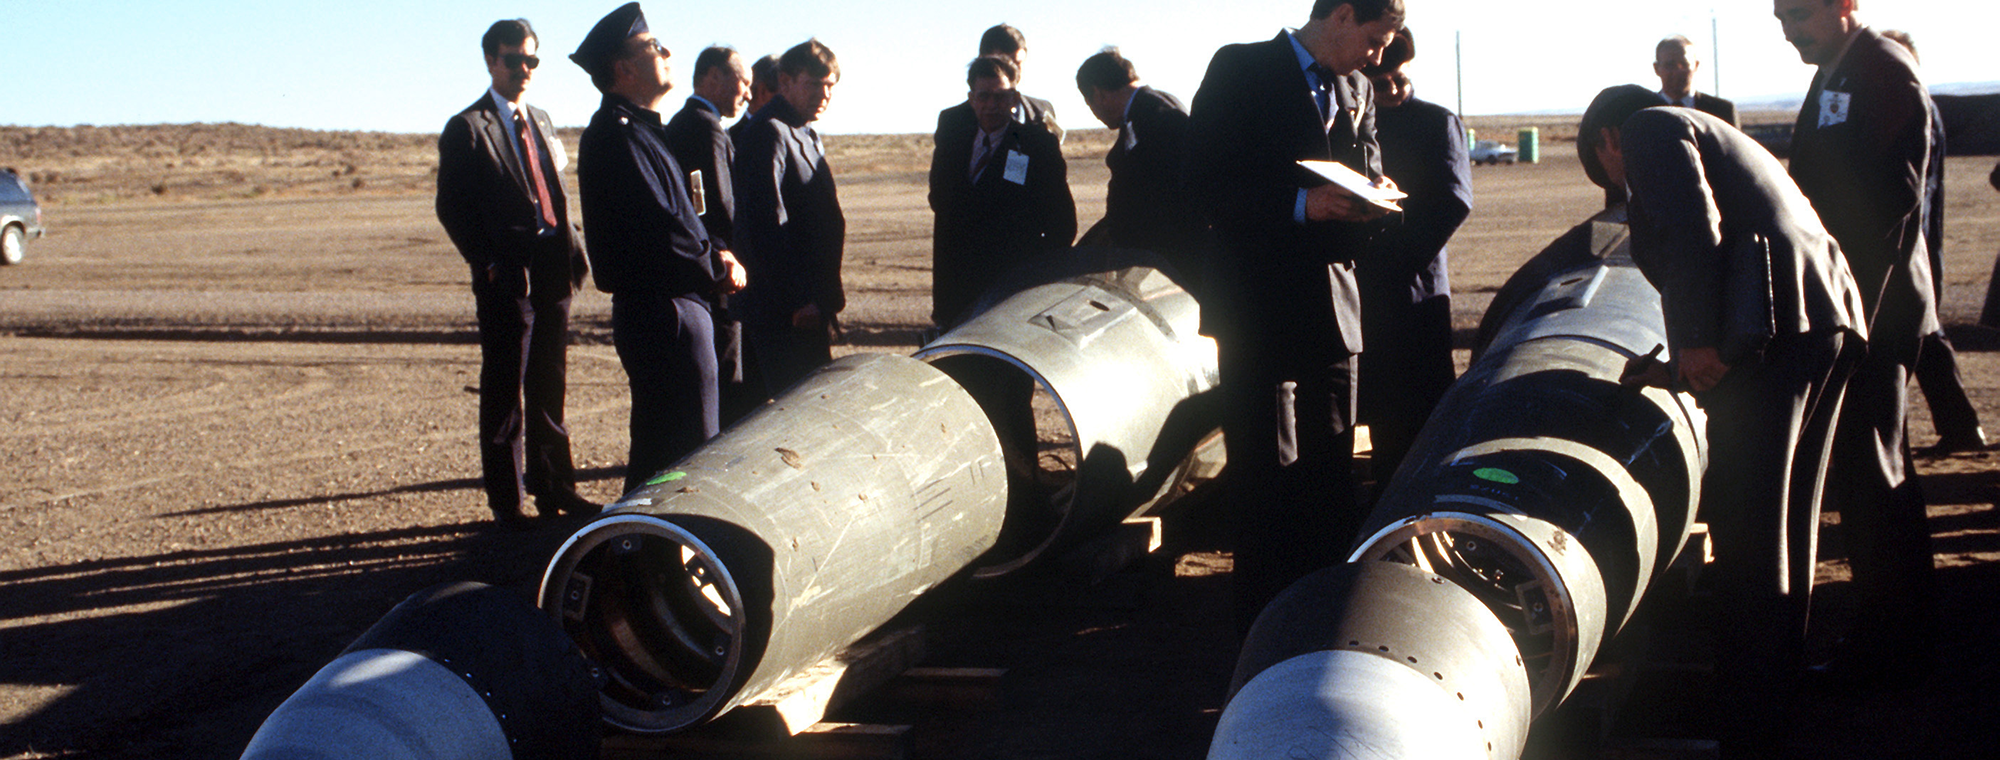 Soviet Inspection of American Pershing II Missiles in 1989